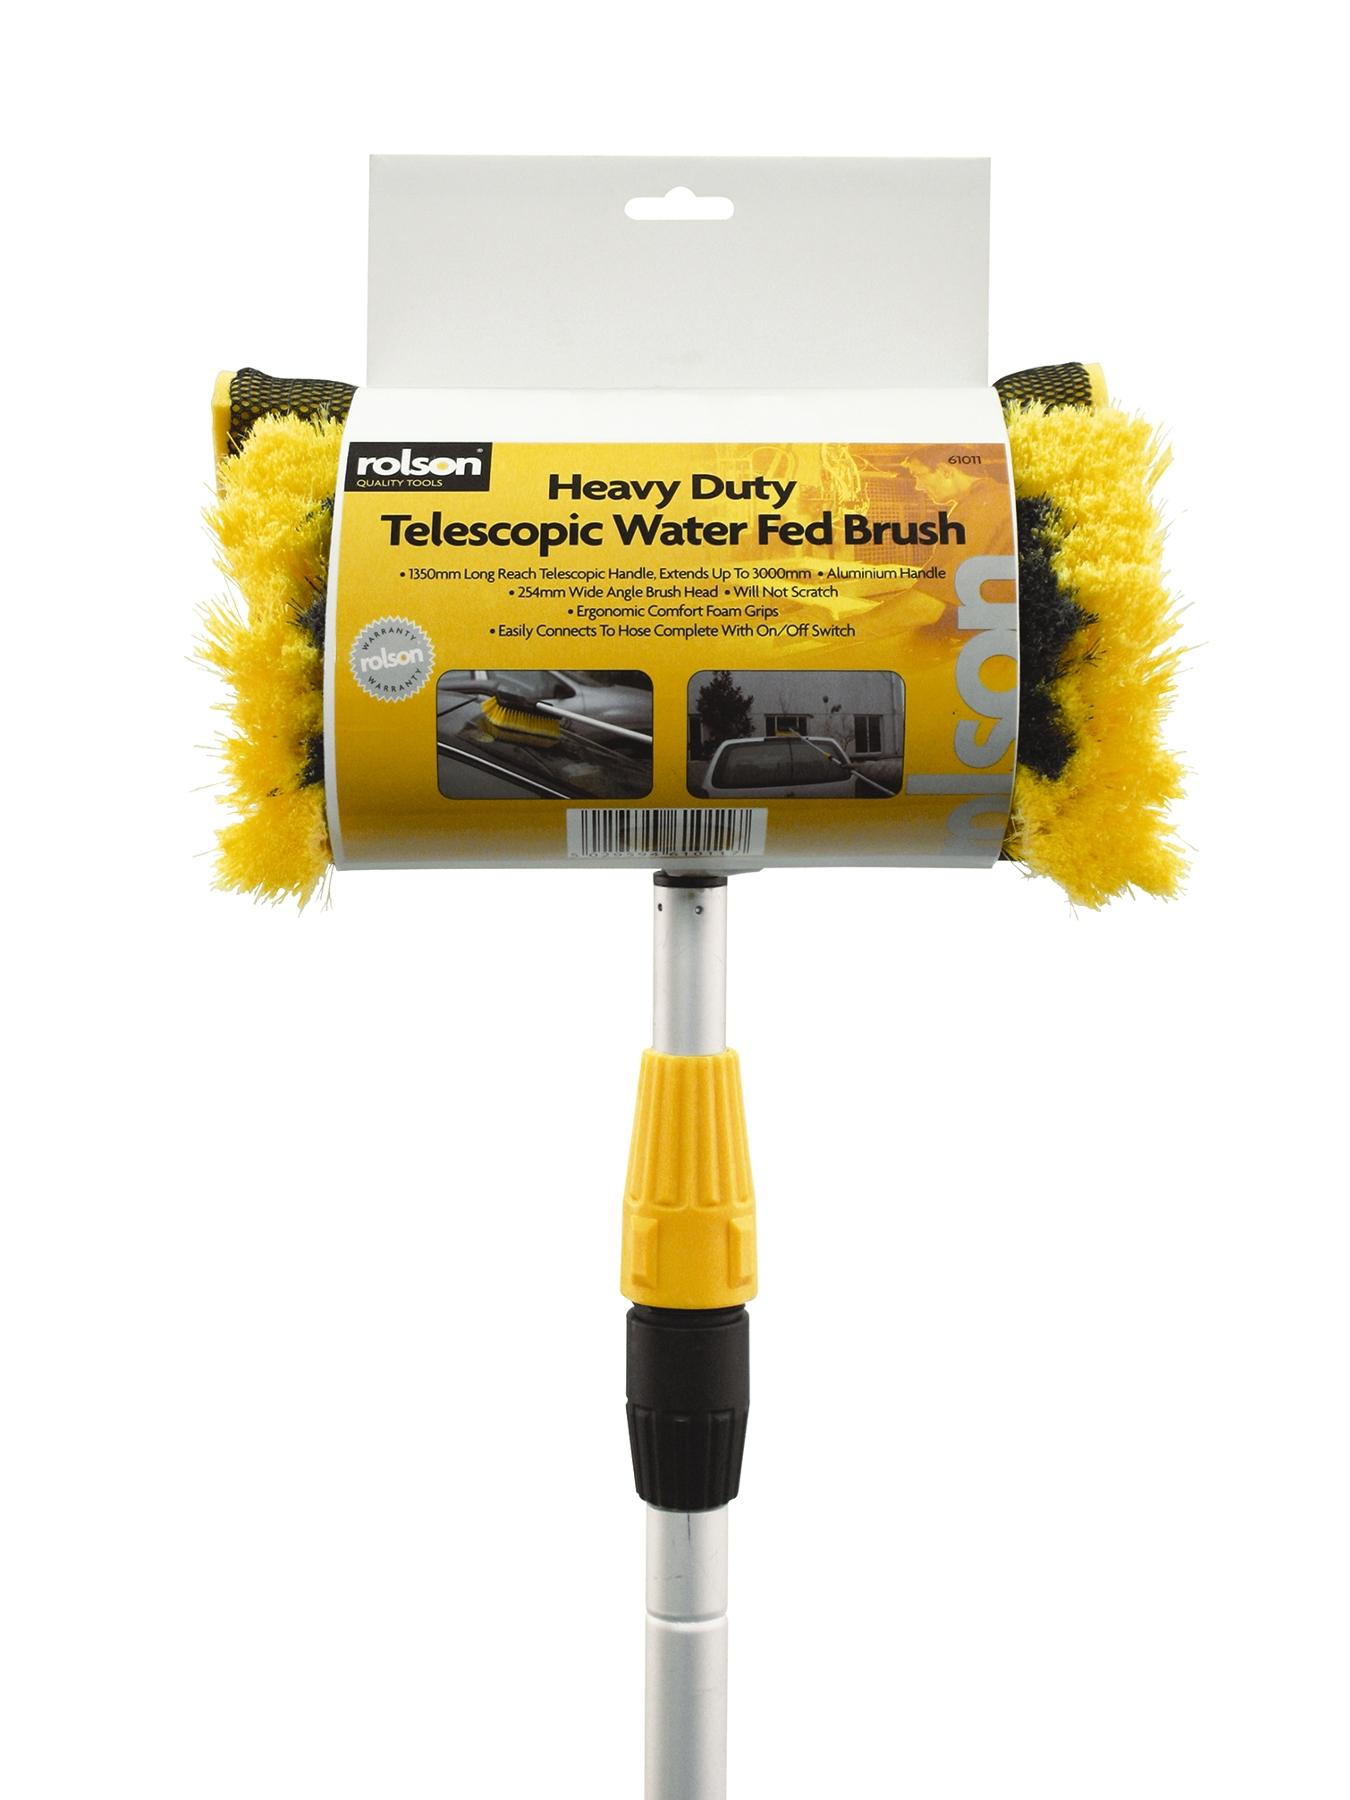 Water Fed Wash Brush 3m Tele Fed Brush with Squeegee